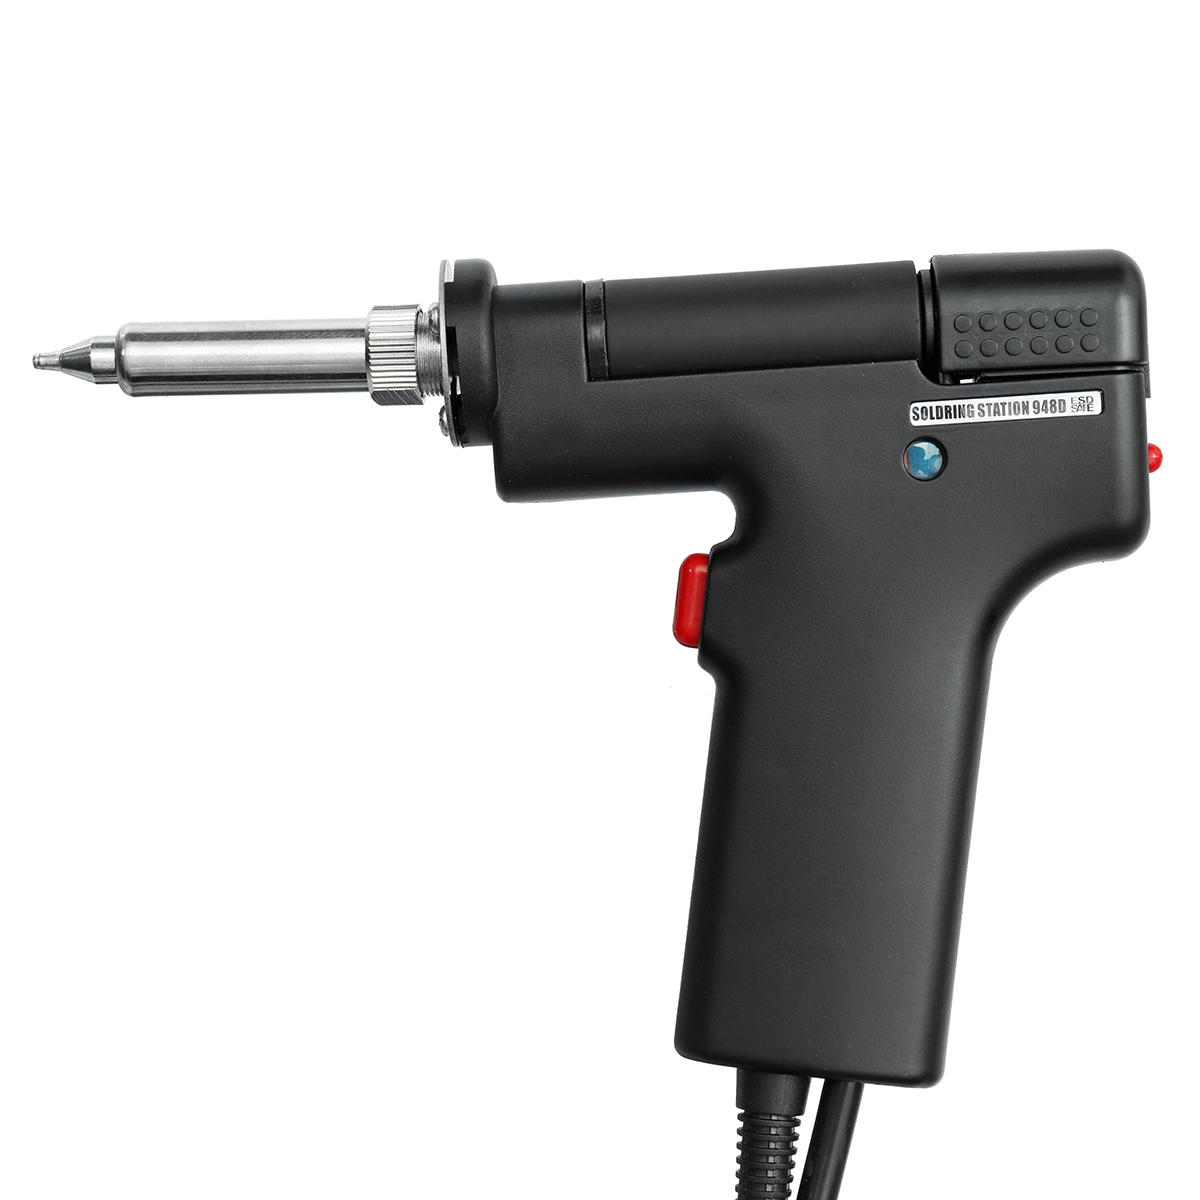 YIHUA 948D 2 in 1 130W ESD Safe Electric Desoldering Soldering Station Gun Pen Tool 220V